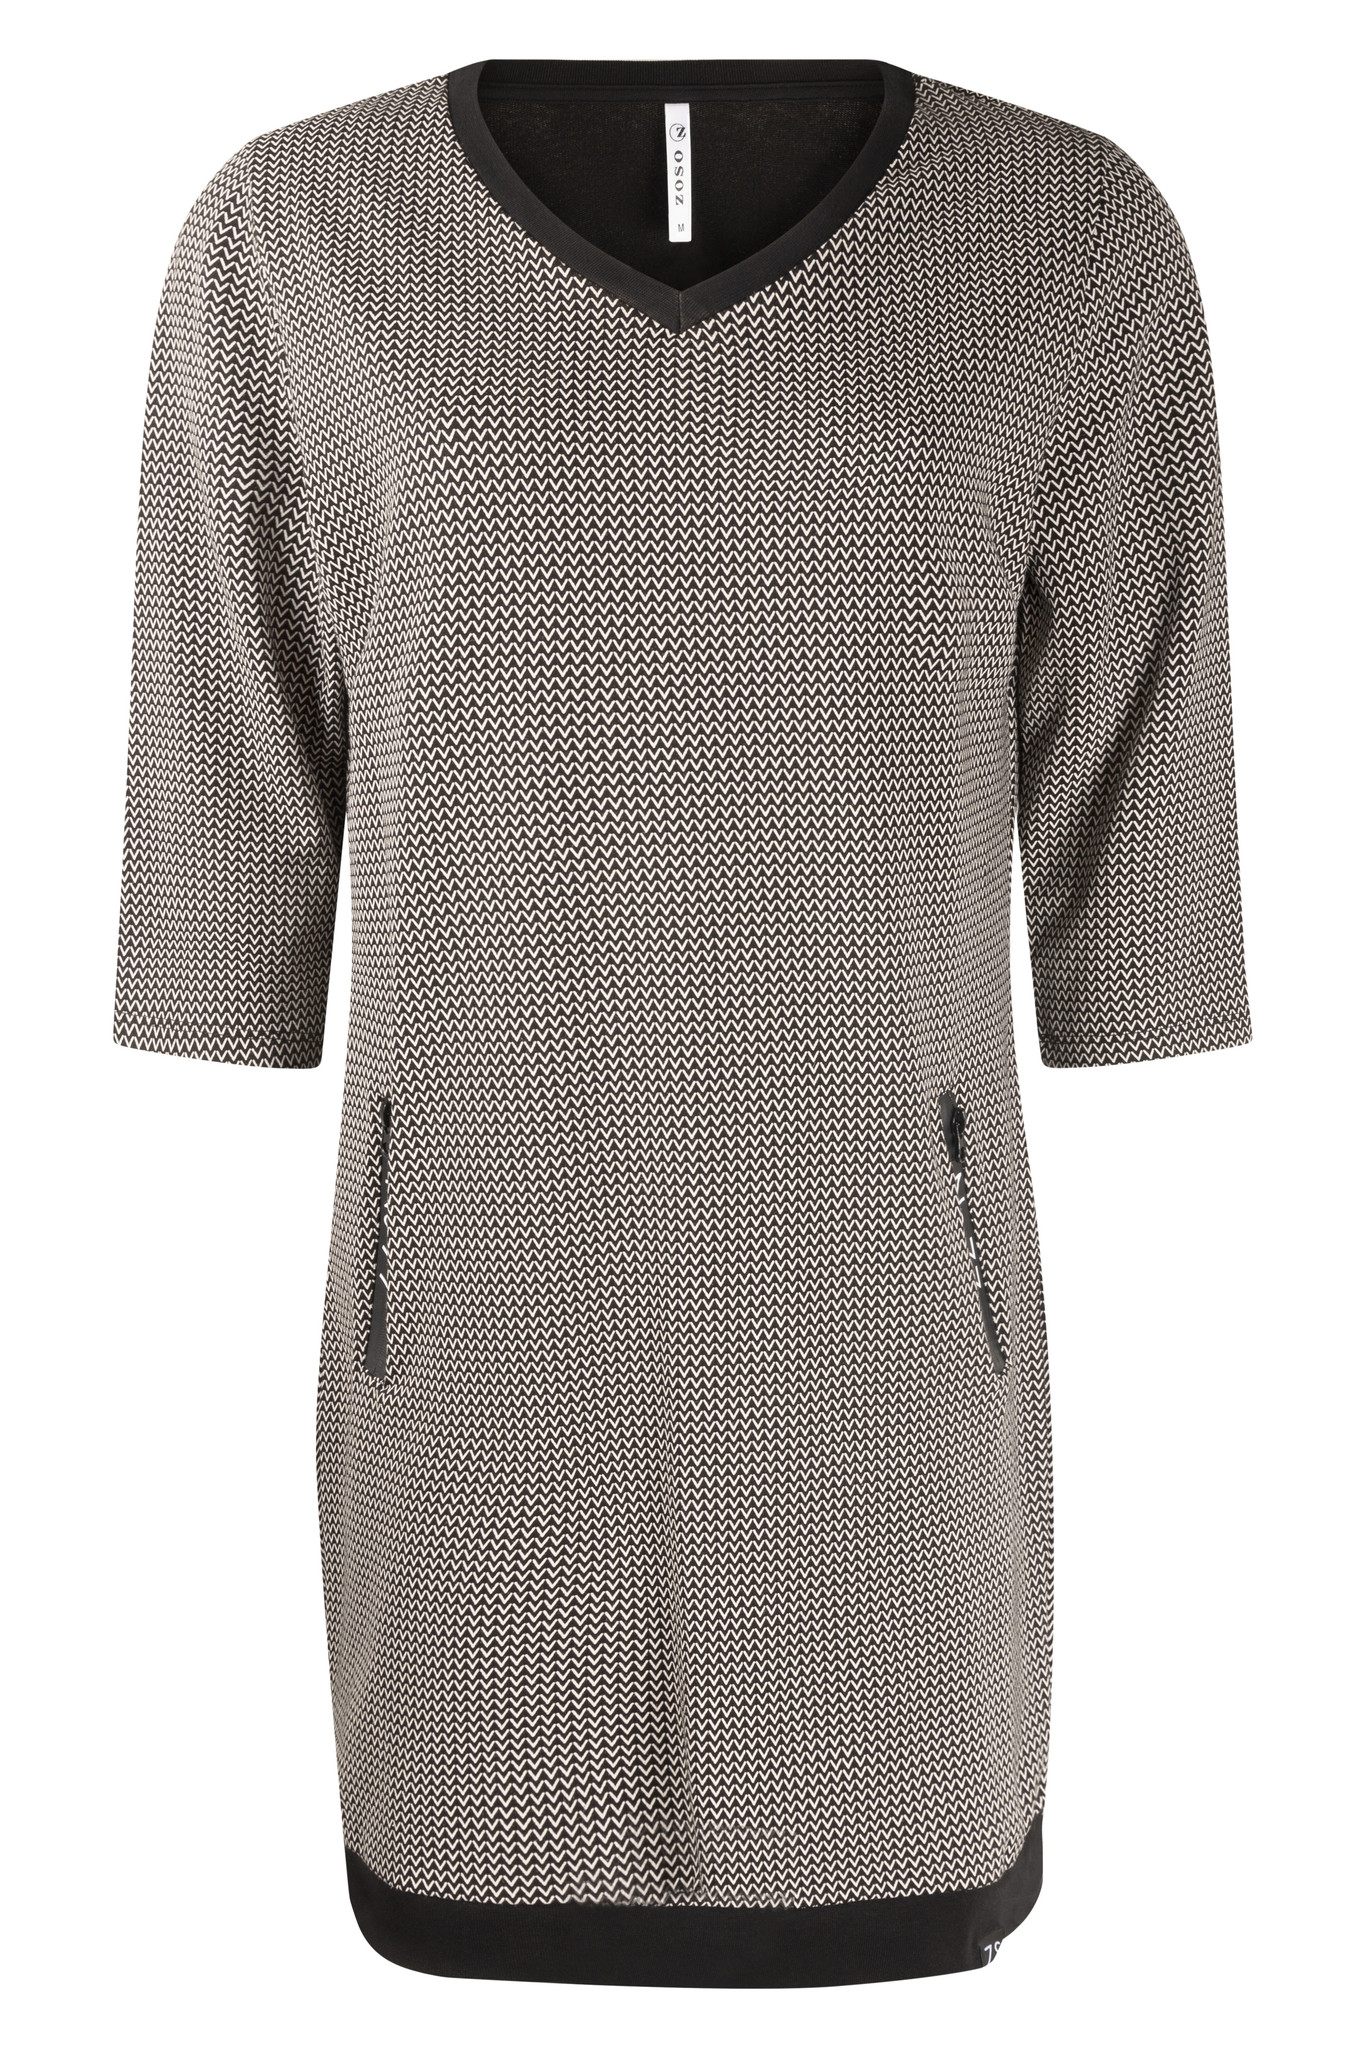 Zoso Zoso 215 Mandy Sporty printed dress with details black/off white